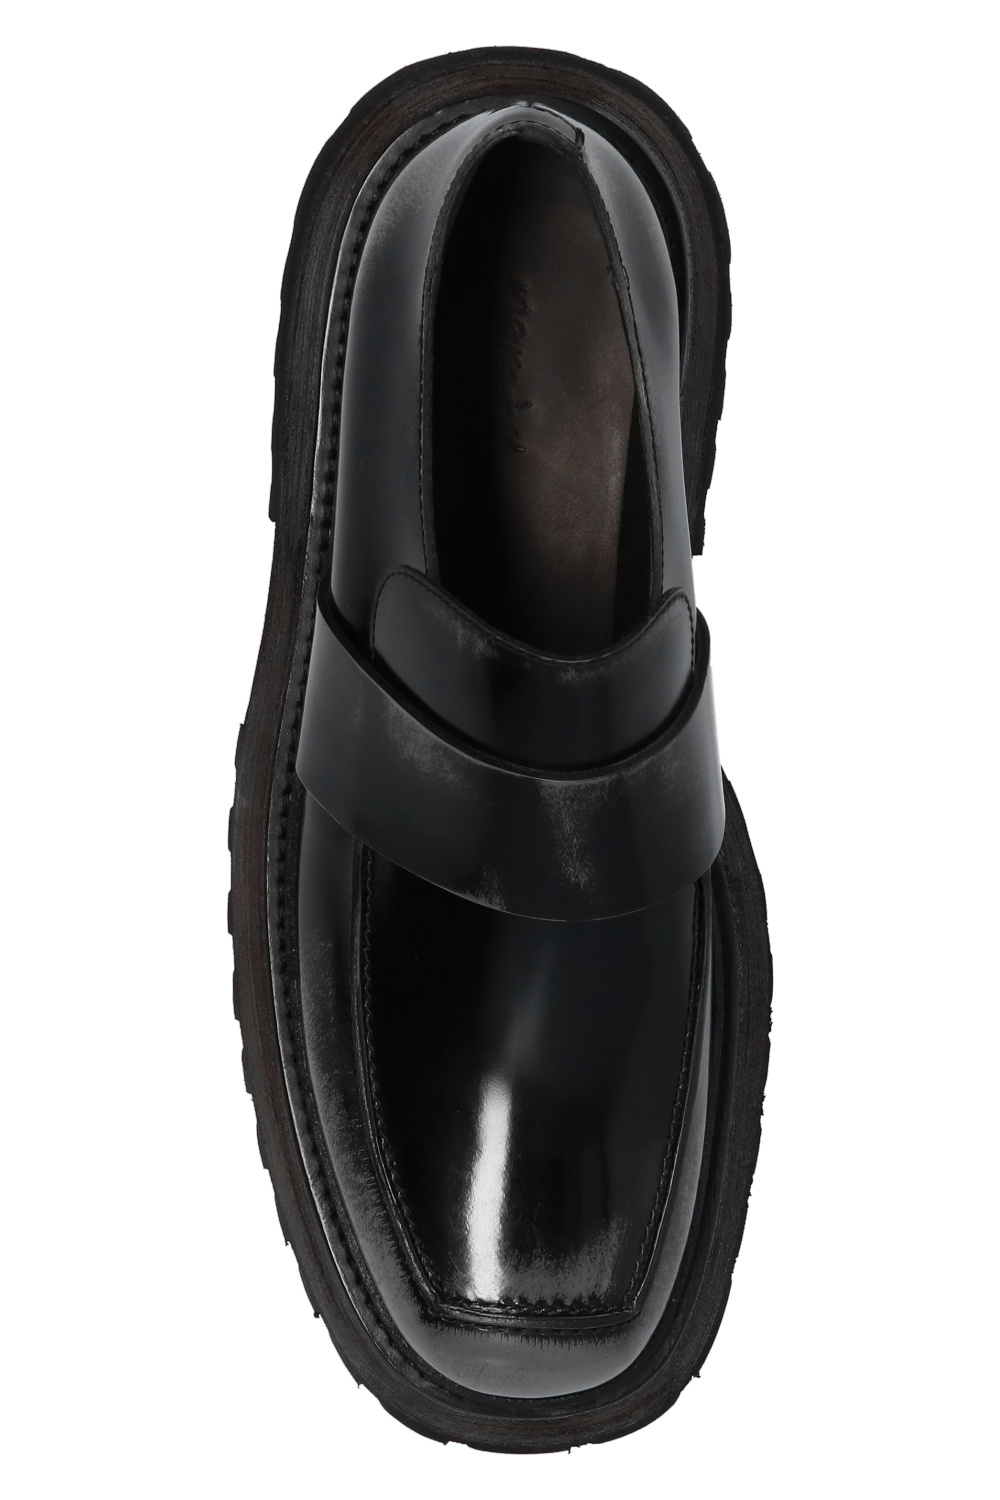 Marsell Leather shoes